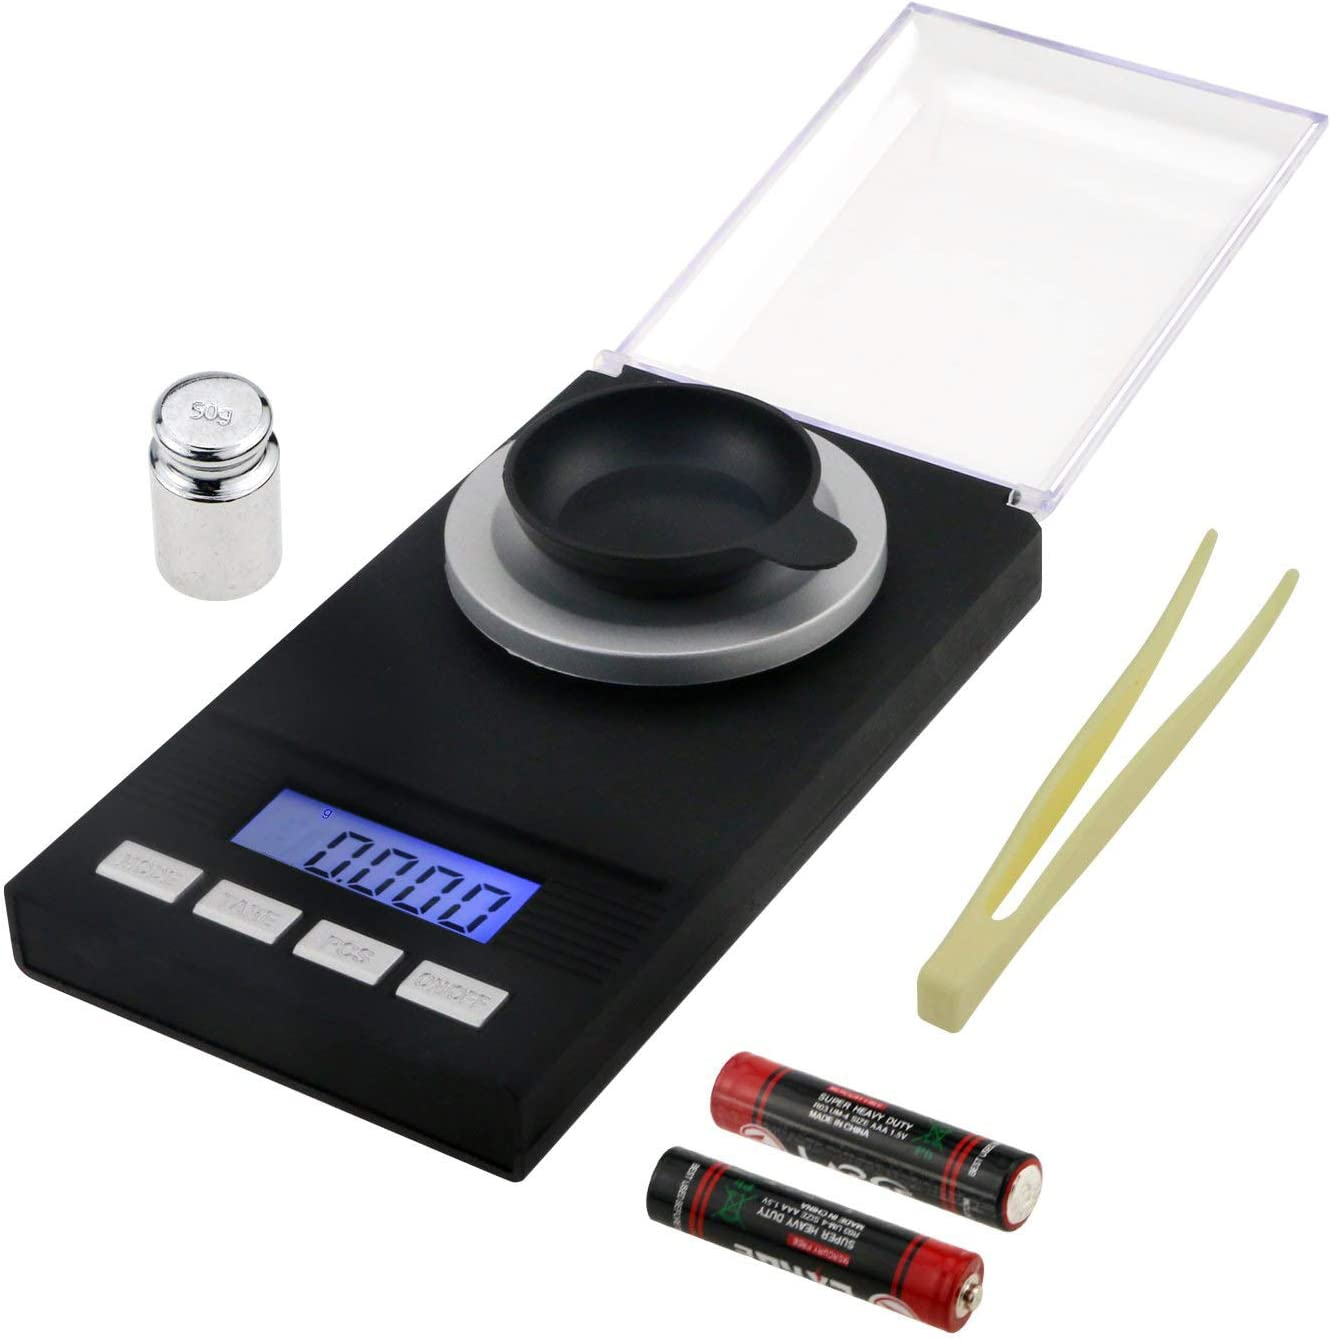 Philonext Digital Milligram Scale 50 X 0.001g - Mini LCD Digital Pocket Lab Weight Scale Reloading Jewelry Scale with Calibration Weights Tweezers and Weighing Pans